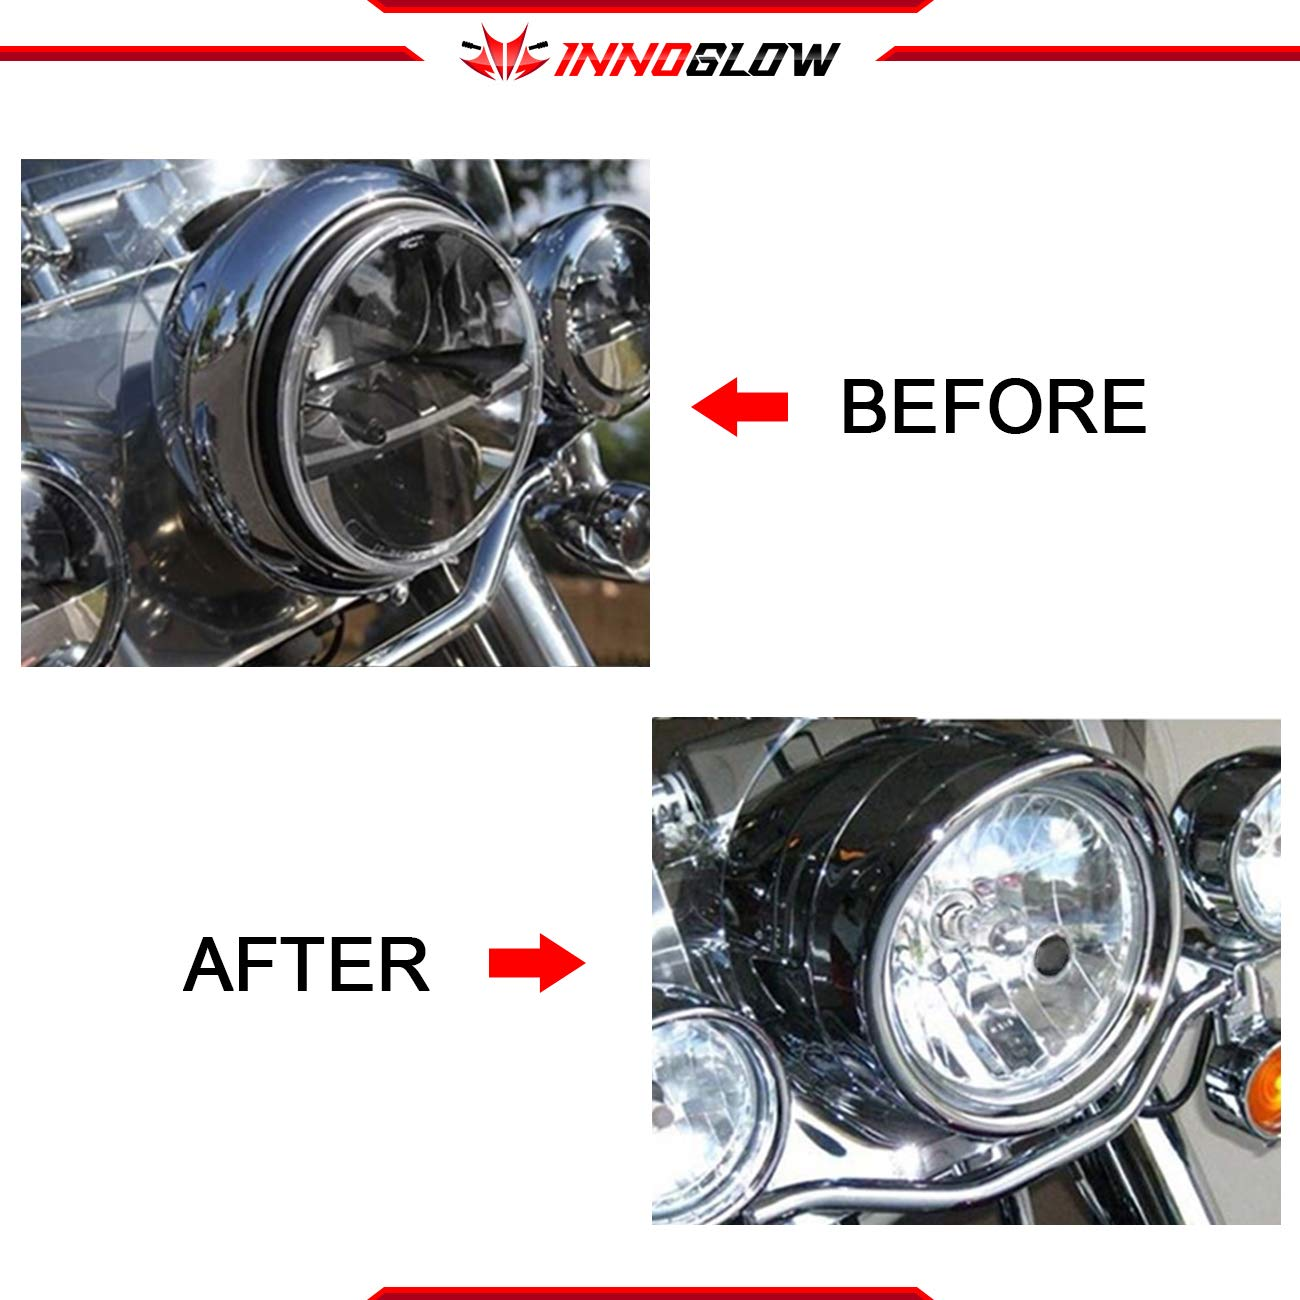 Black INNOGLOW 7 Motorcycle Headlight and 4.5 Auxiliary Lights Decorate Trim Rings Visor Sets for Harley Davidson Softail 94-13